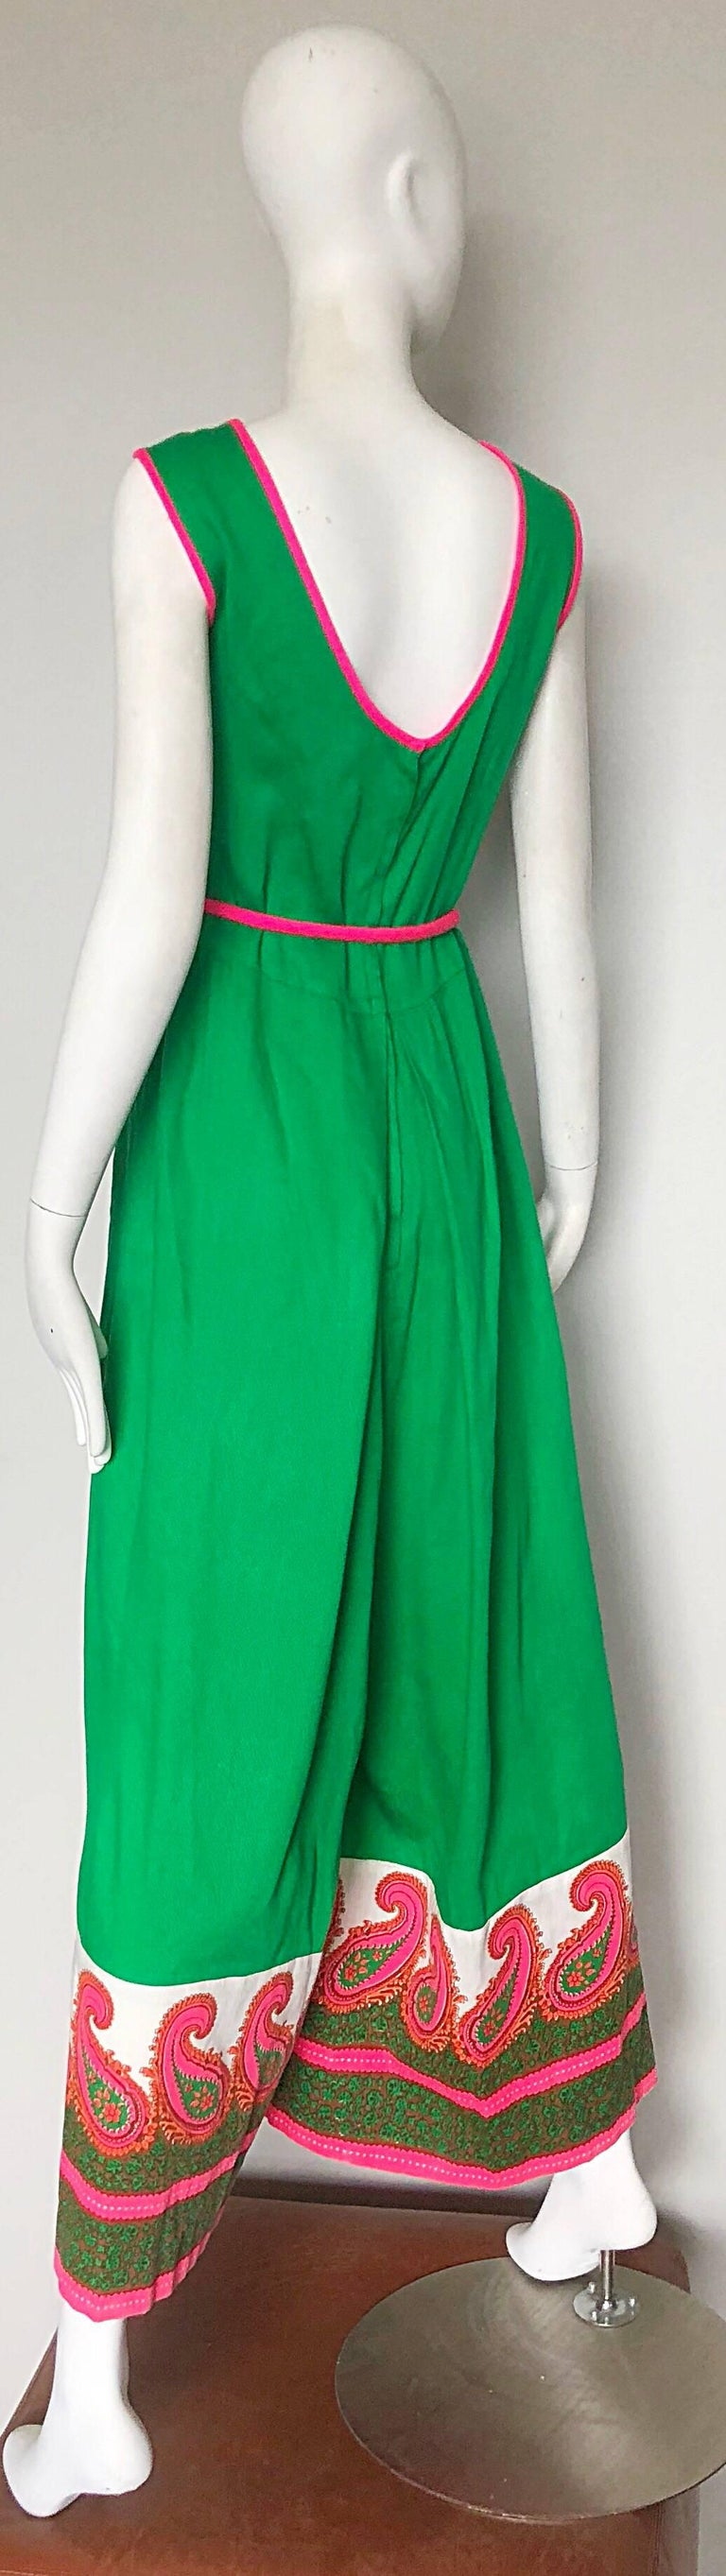 Alfred Shaheen 1960s Large Size Kelly Green + Pink Vintage 60s Palazzo Jumpsuit For Sale 4